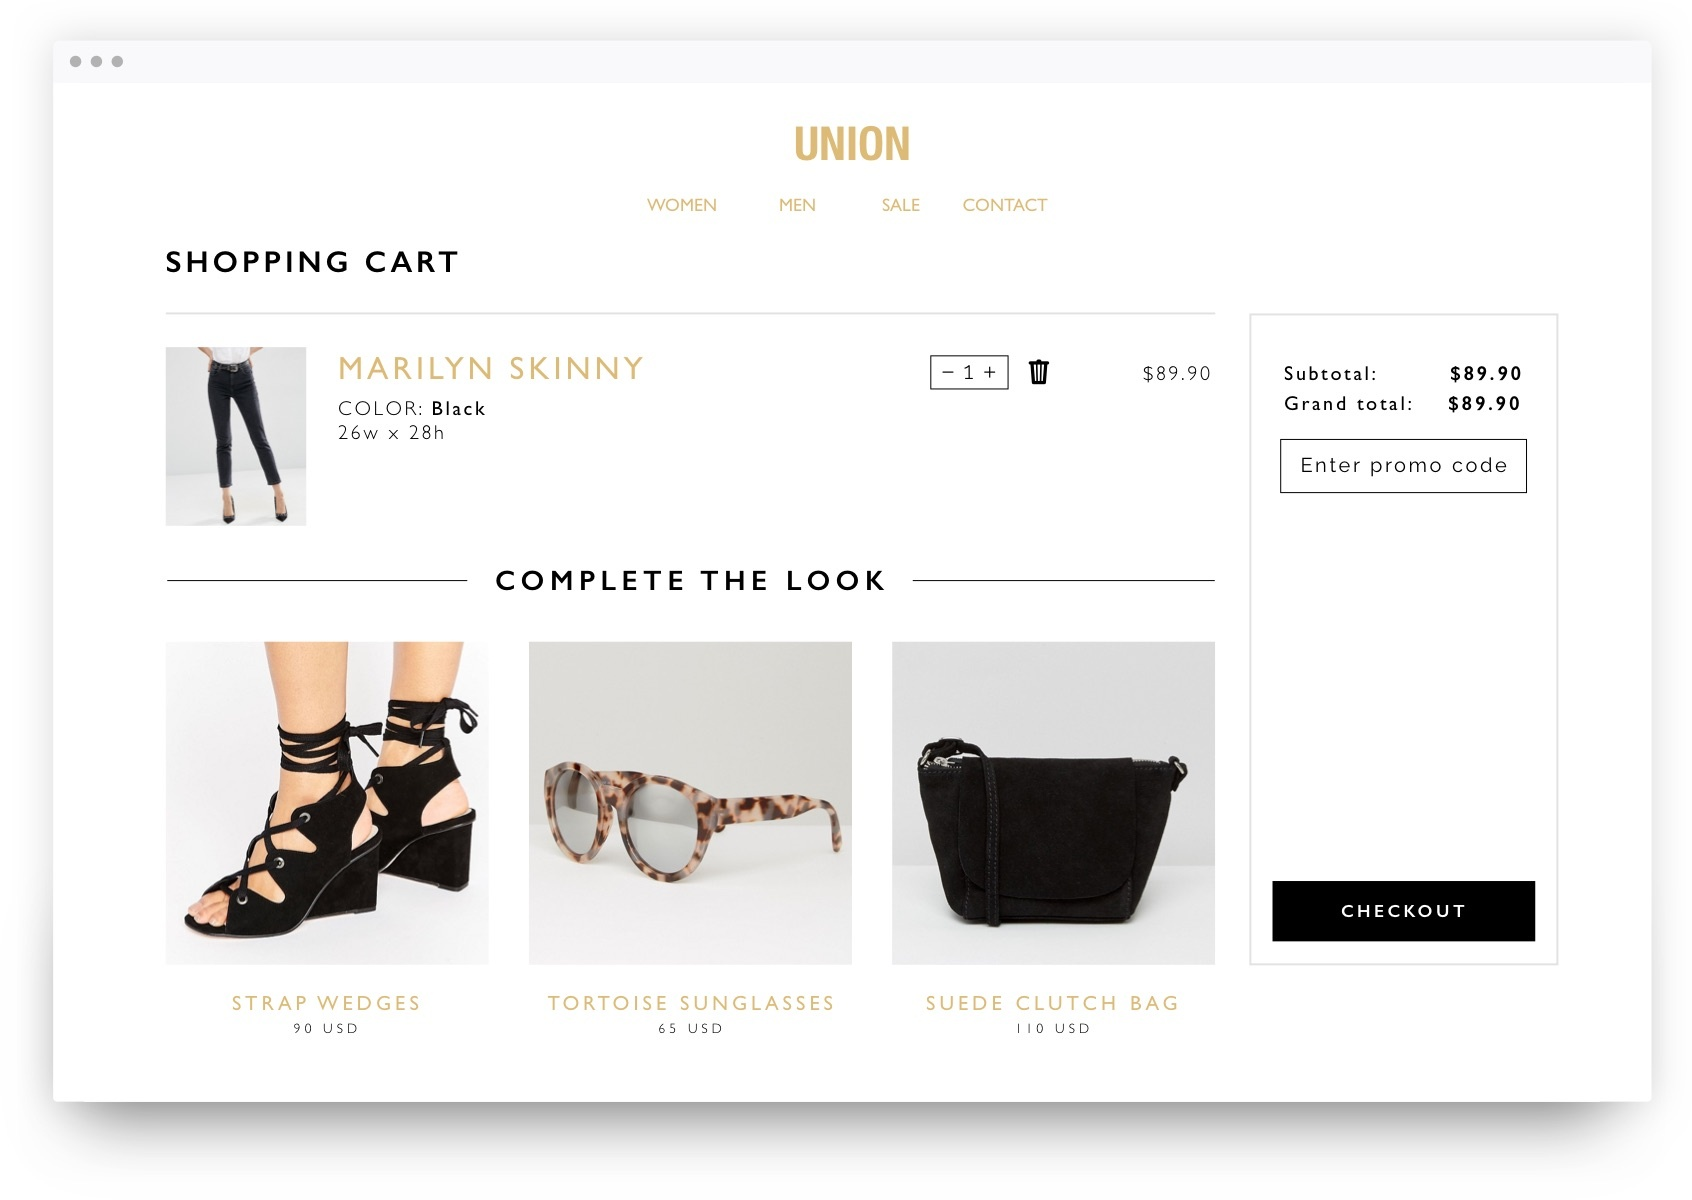 Promote upsell through product recommendations